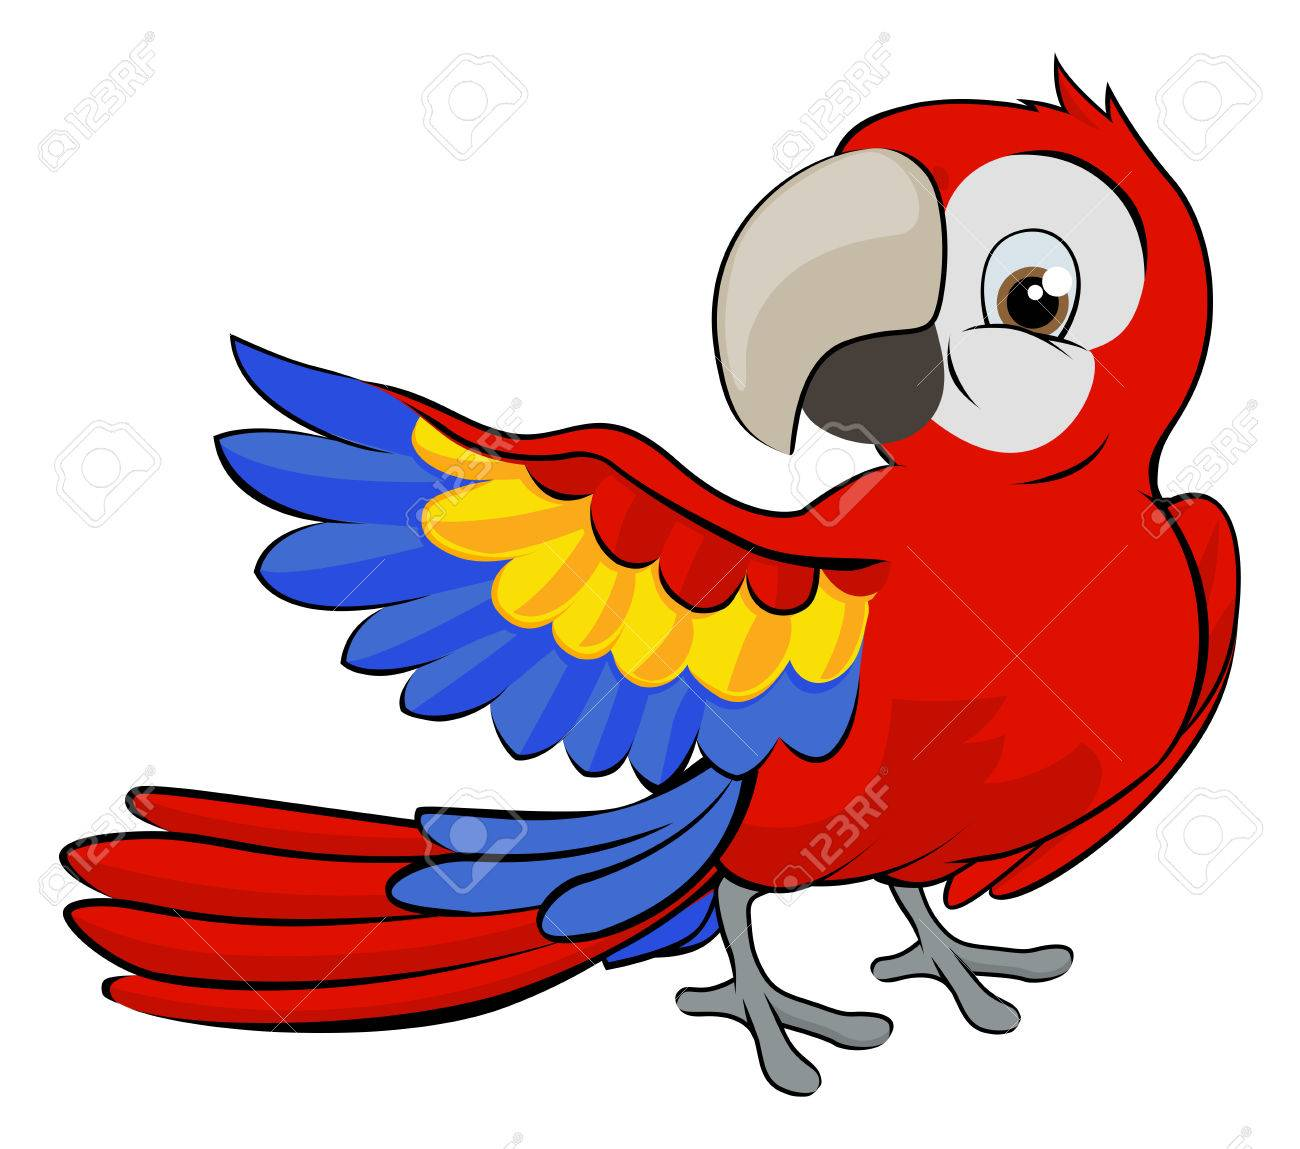 Cute cartoon parrot mascot pointing with a wing.